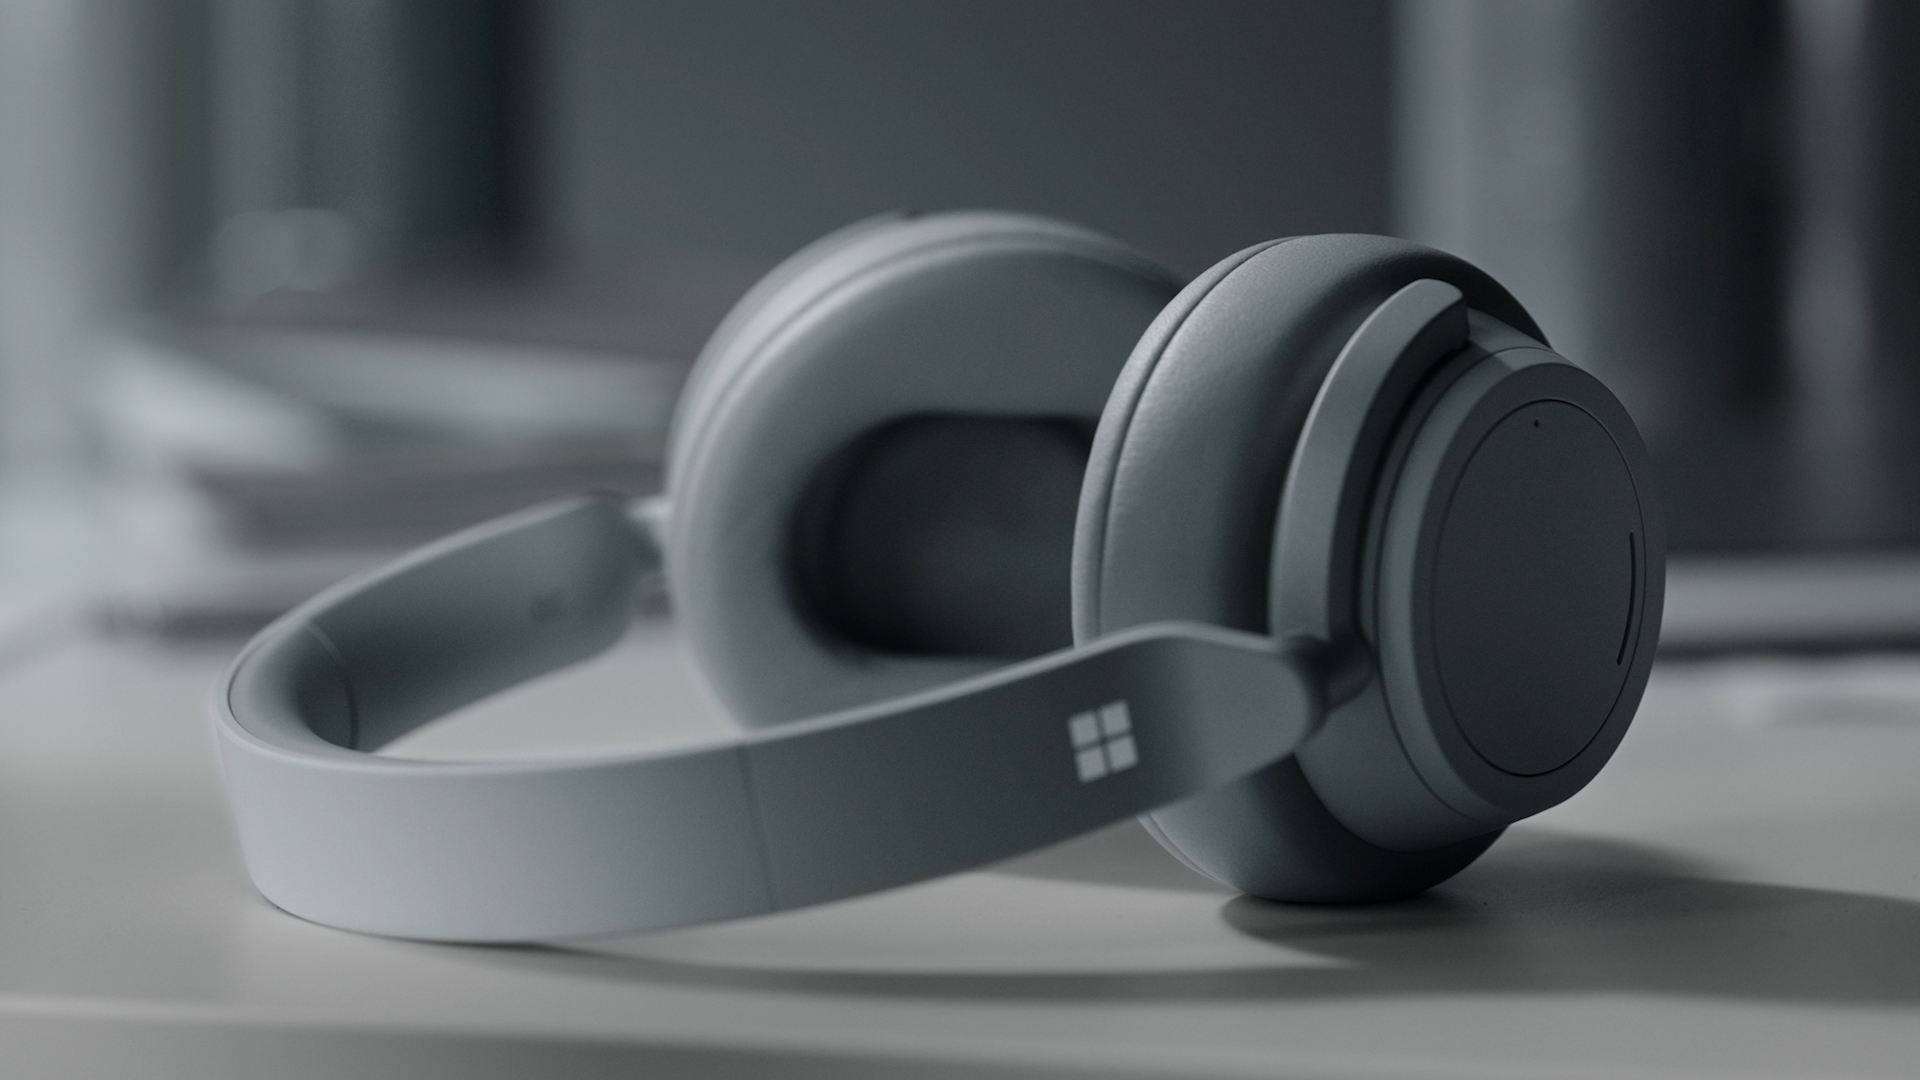 Microsoft Surface active noise canceling headphones get a $100 price cut, now $250